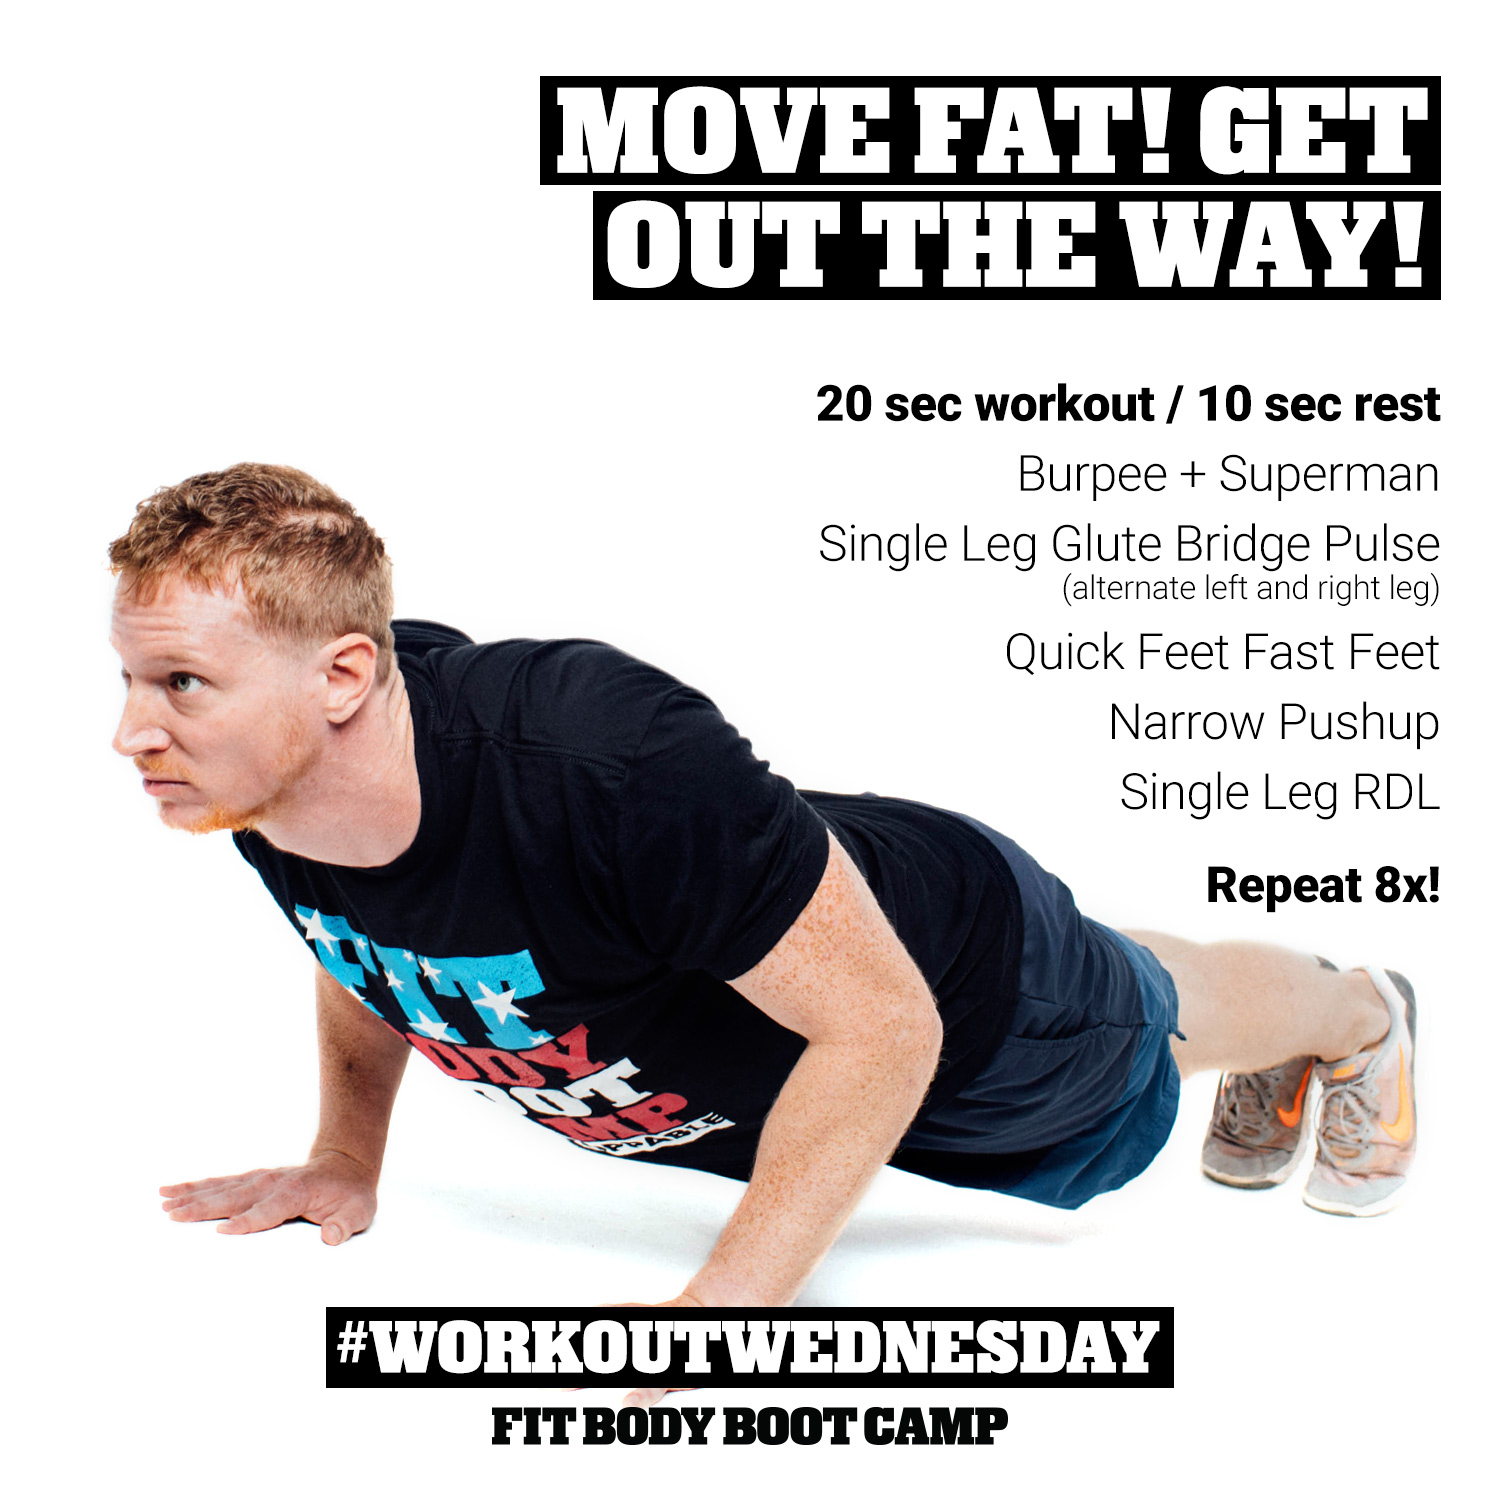 Move Fat Get Out The Way Brien Shamps Fit Body Boot Camp Circuit Training Timer On Each Round 20 Seconds Of Max Effort Followed By 10 Rest After 8 Rounds Exercise Transition For 1 Minute Set Your